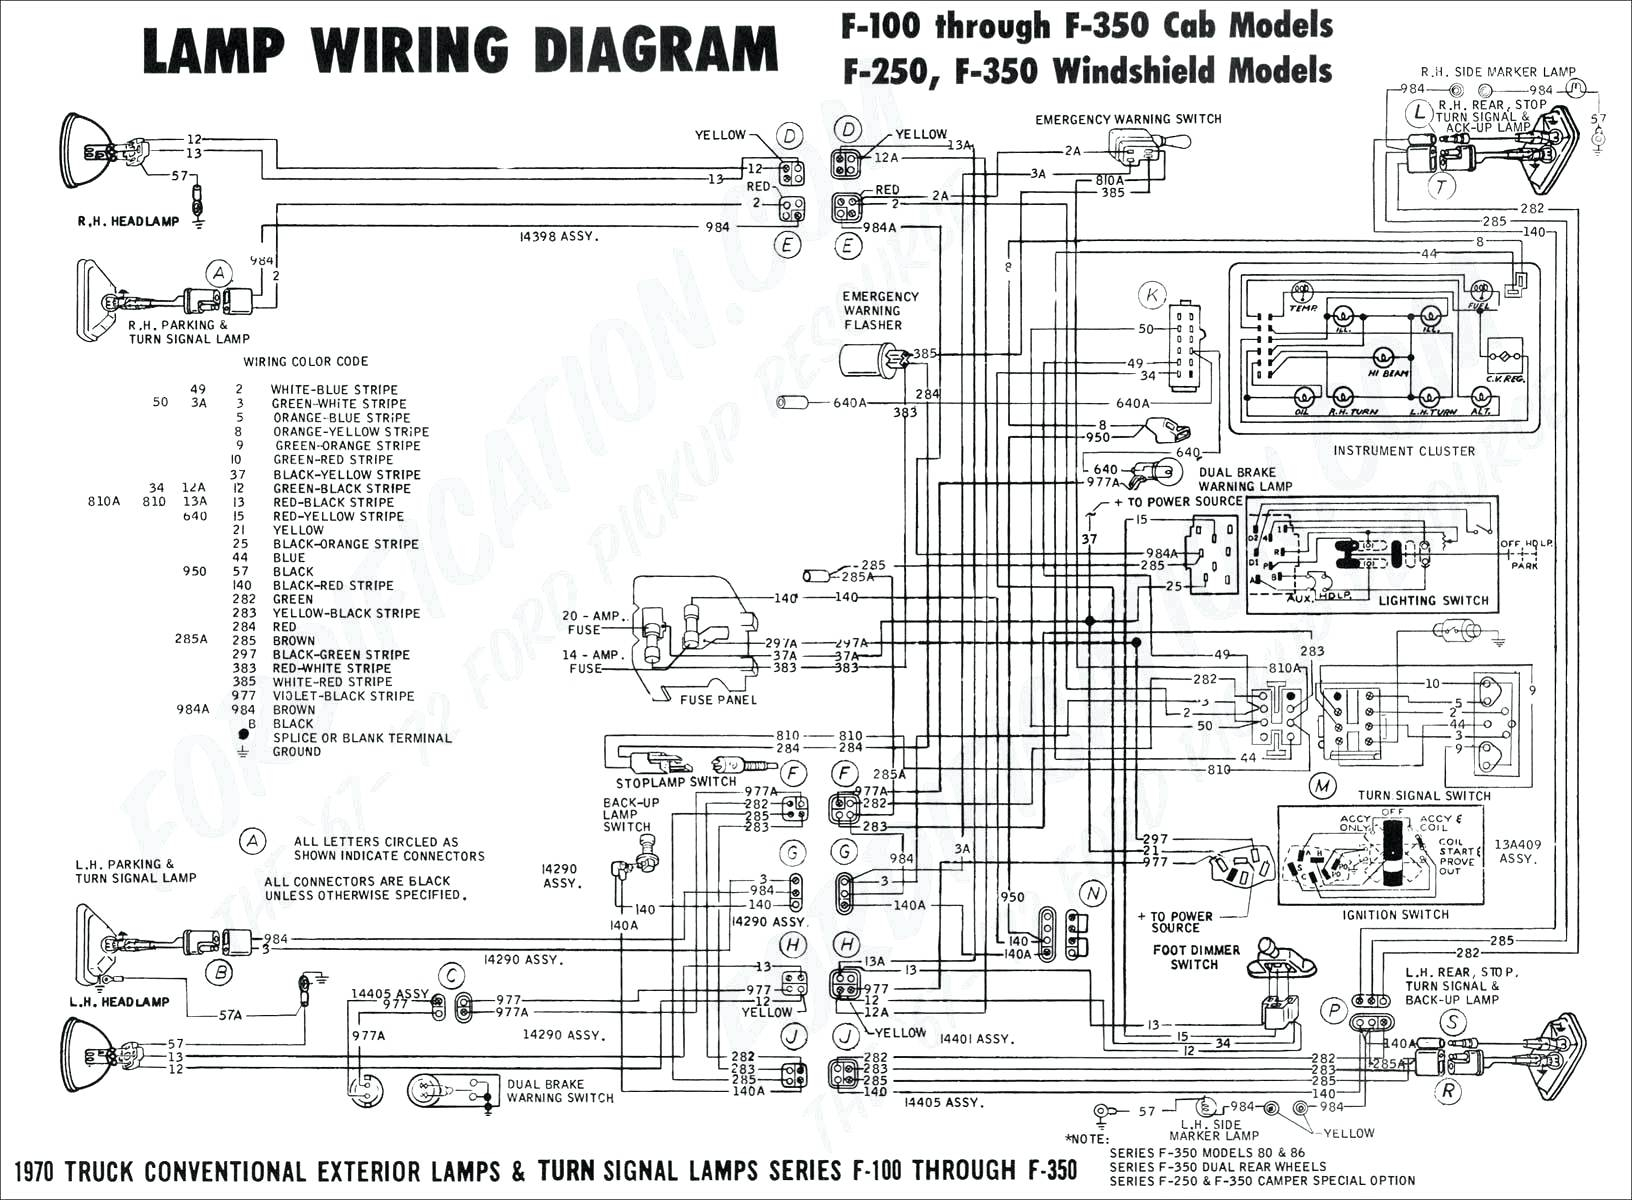 roadmaster wiring diode diagram Download-tow wiring kit for 2000 f250 library of wiring diagram u2022 rh diagramproduct today Tow Hitch Wiring Kit Stowmaster Wiring Kits 4-r